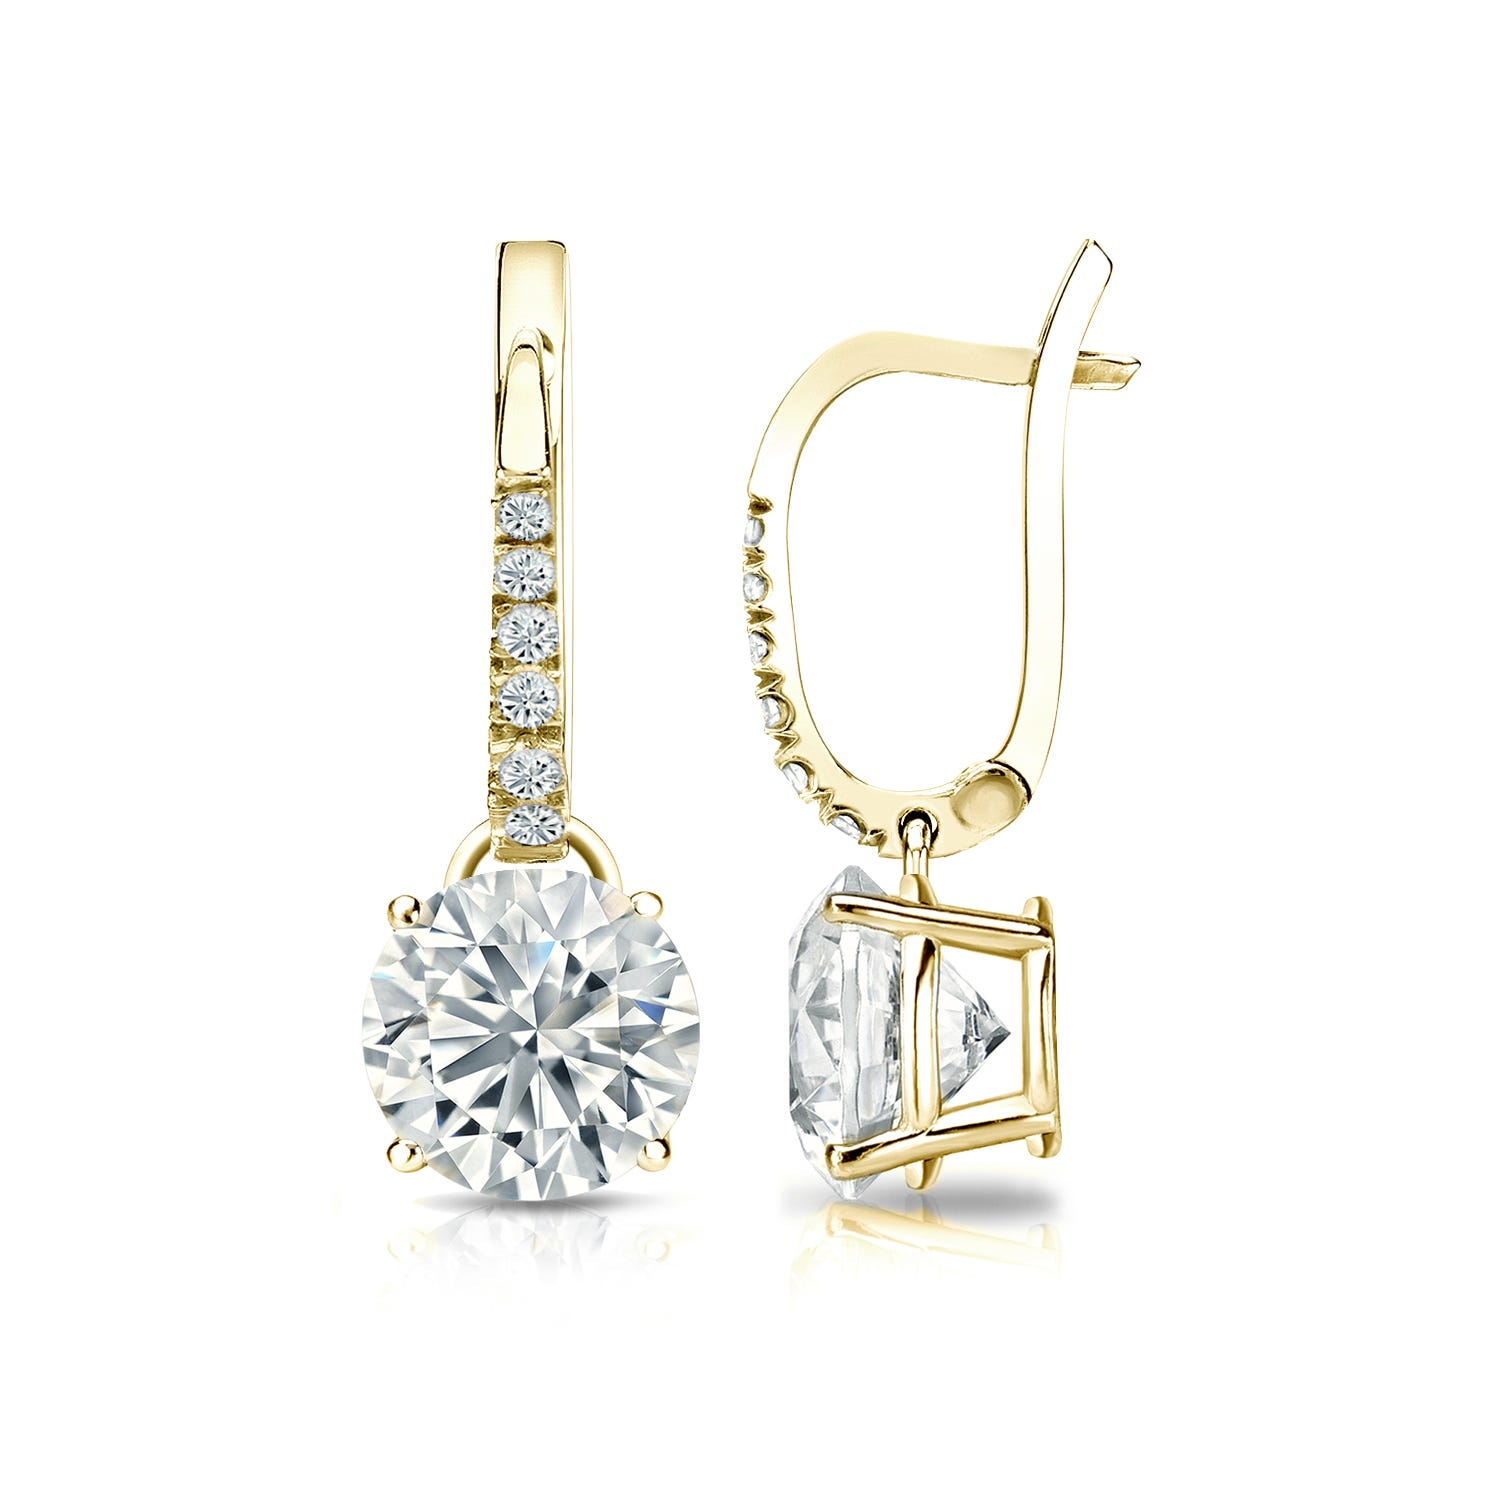 Diamond 2ctw. 4-Prong Round Drop Earrings in 18k Yellow Gold I1 Clarity